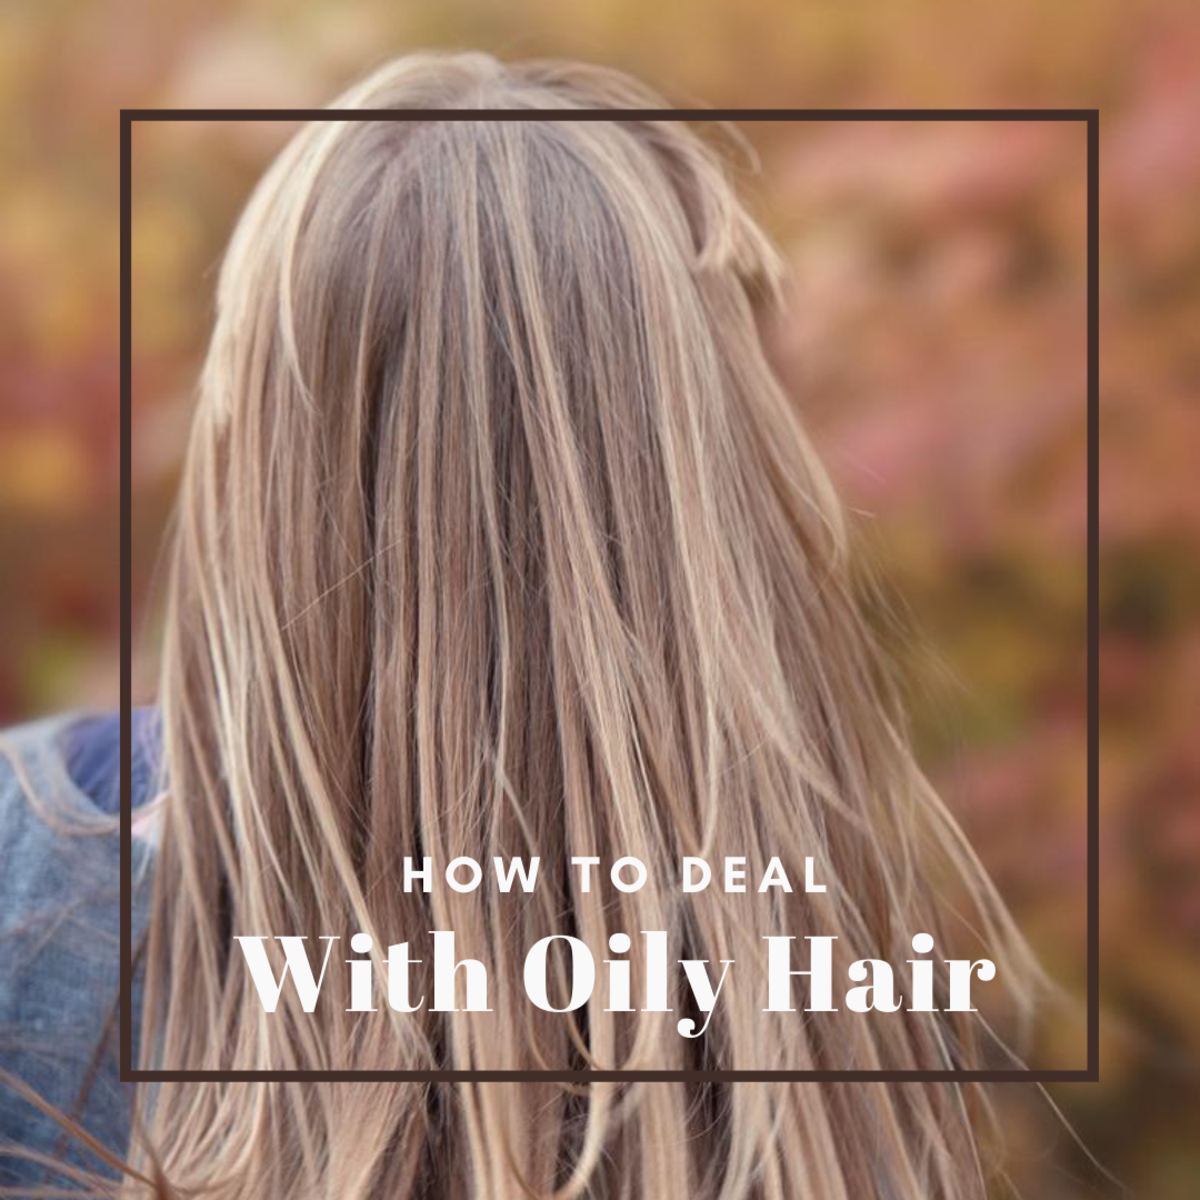 Suggestions for how to deal with oily hair